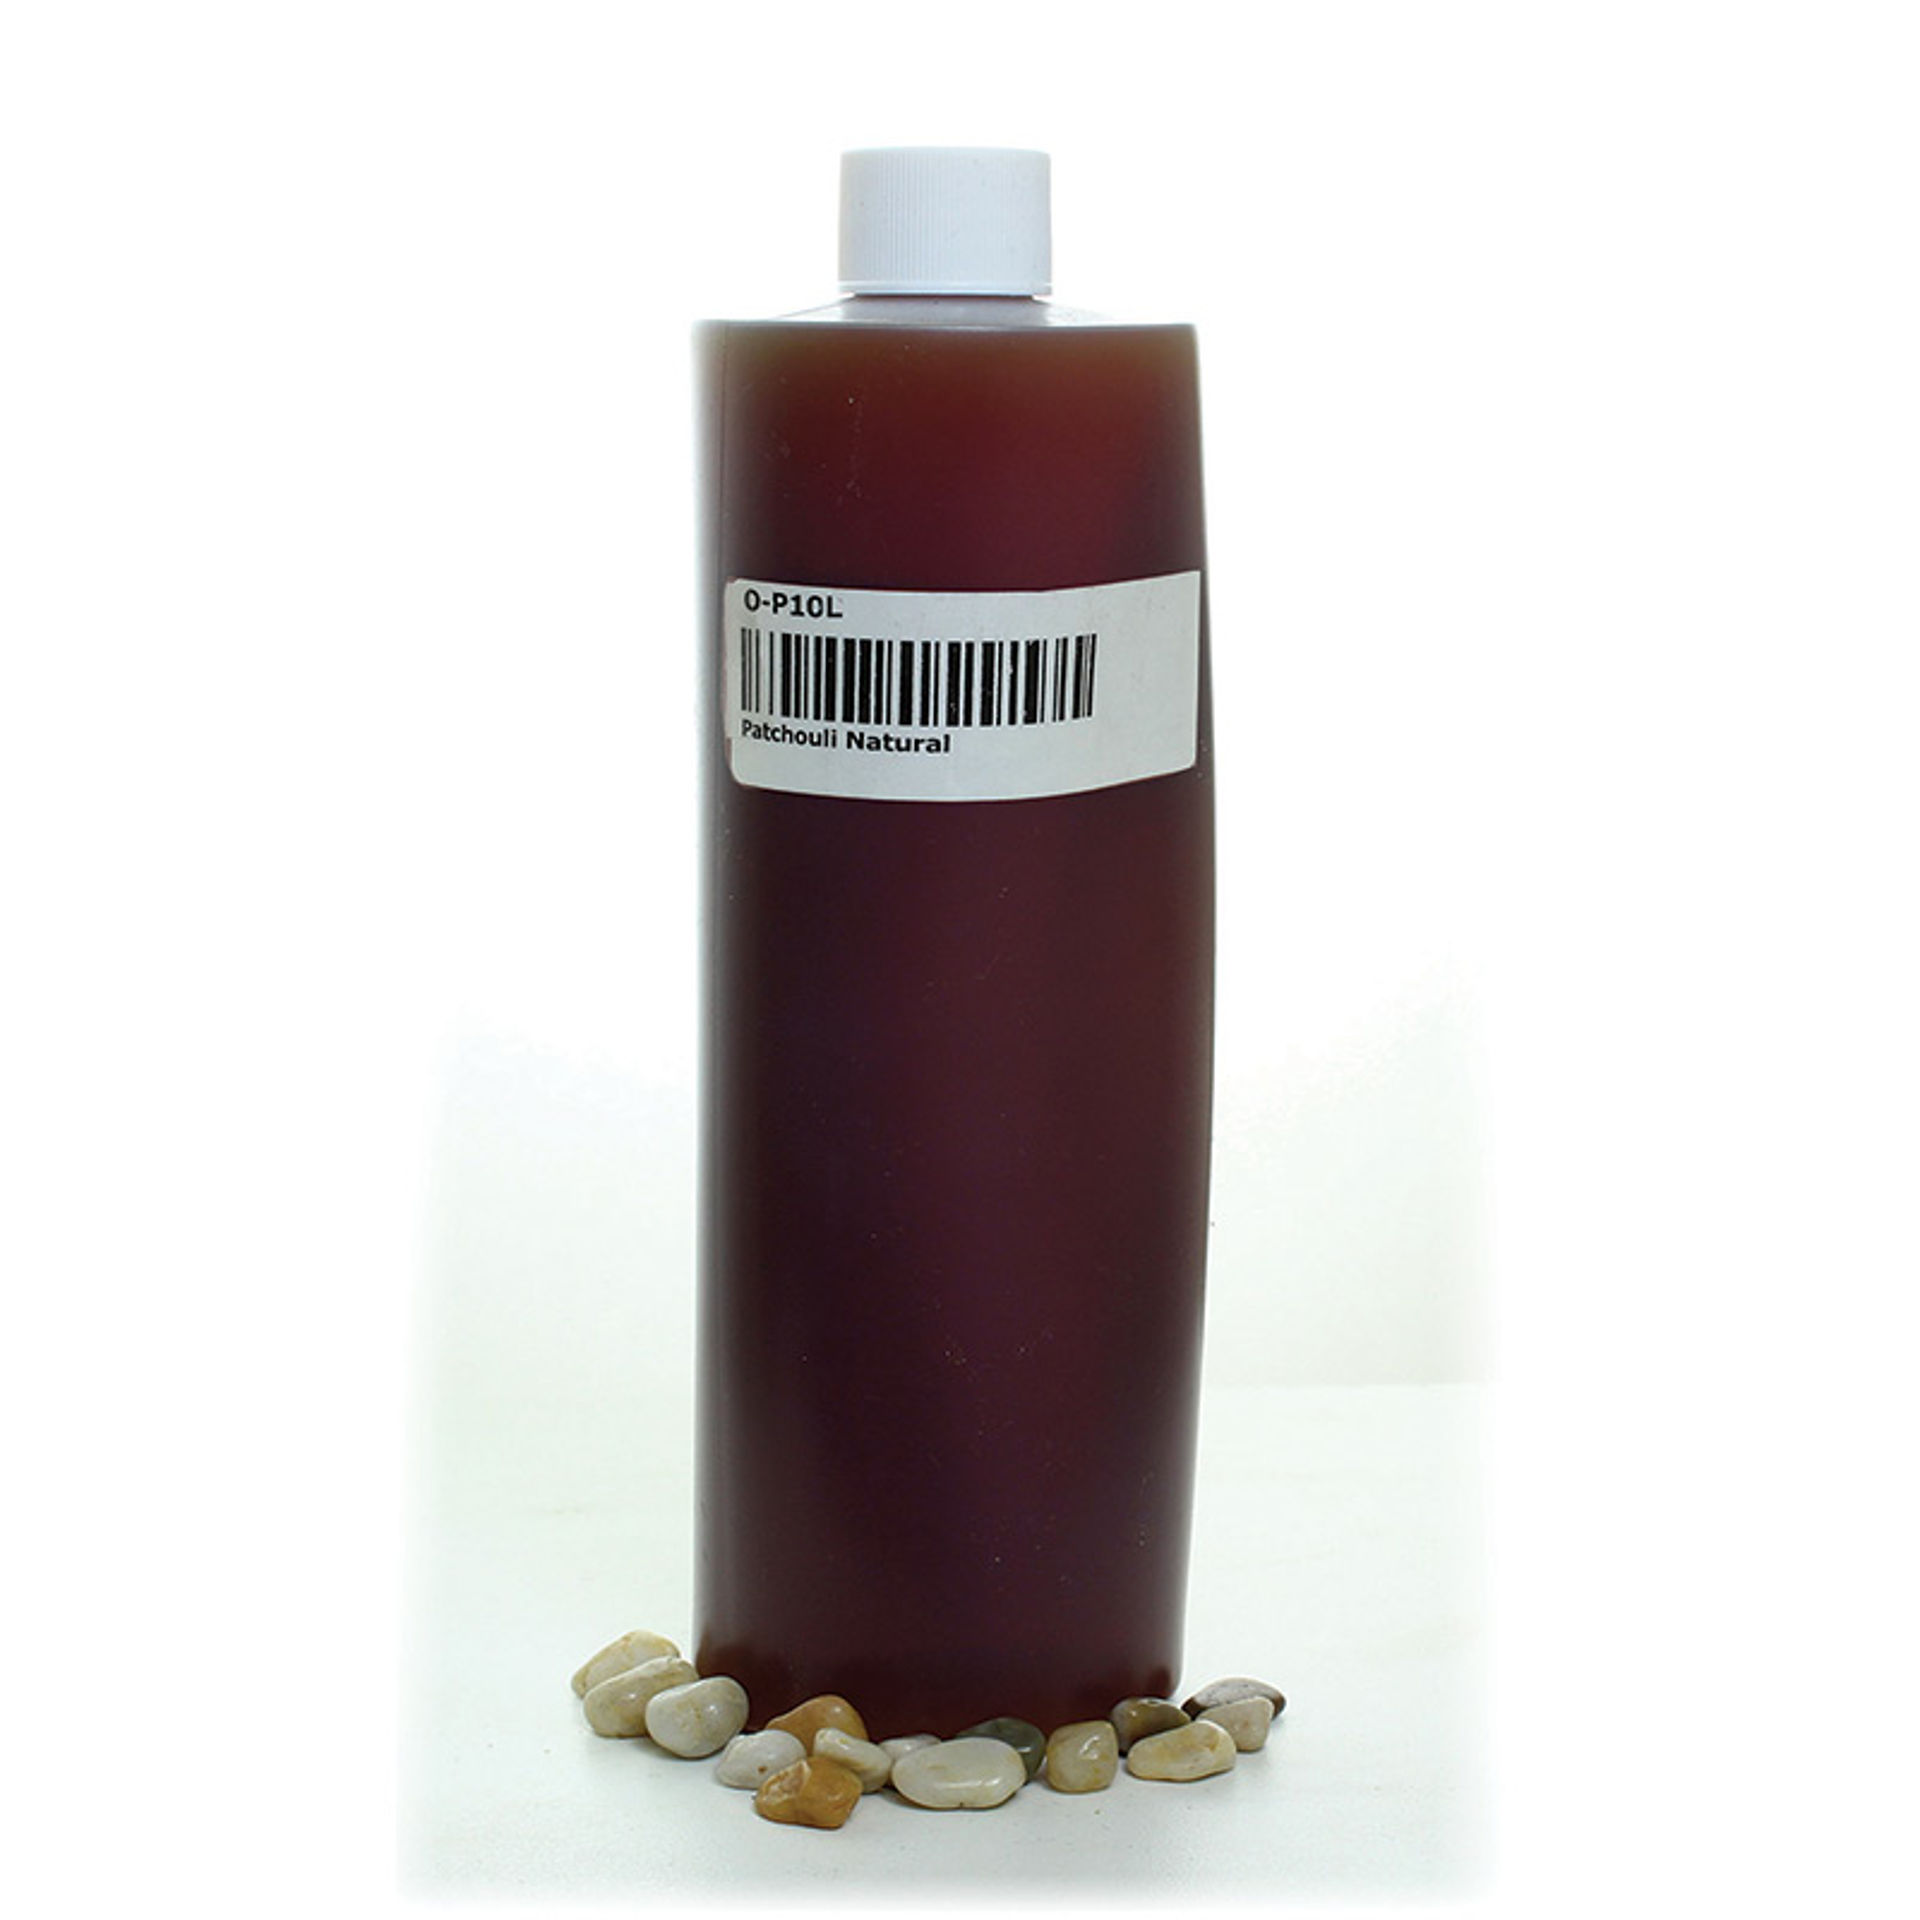 Picture of 1 Lb Patchouli Natural Fragrance Oil